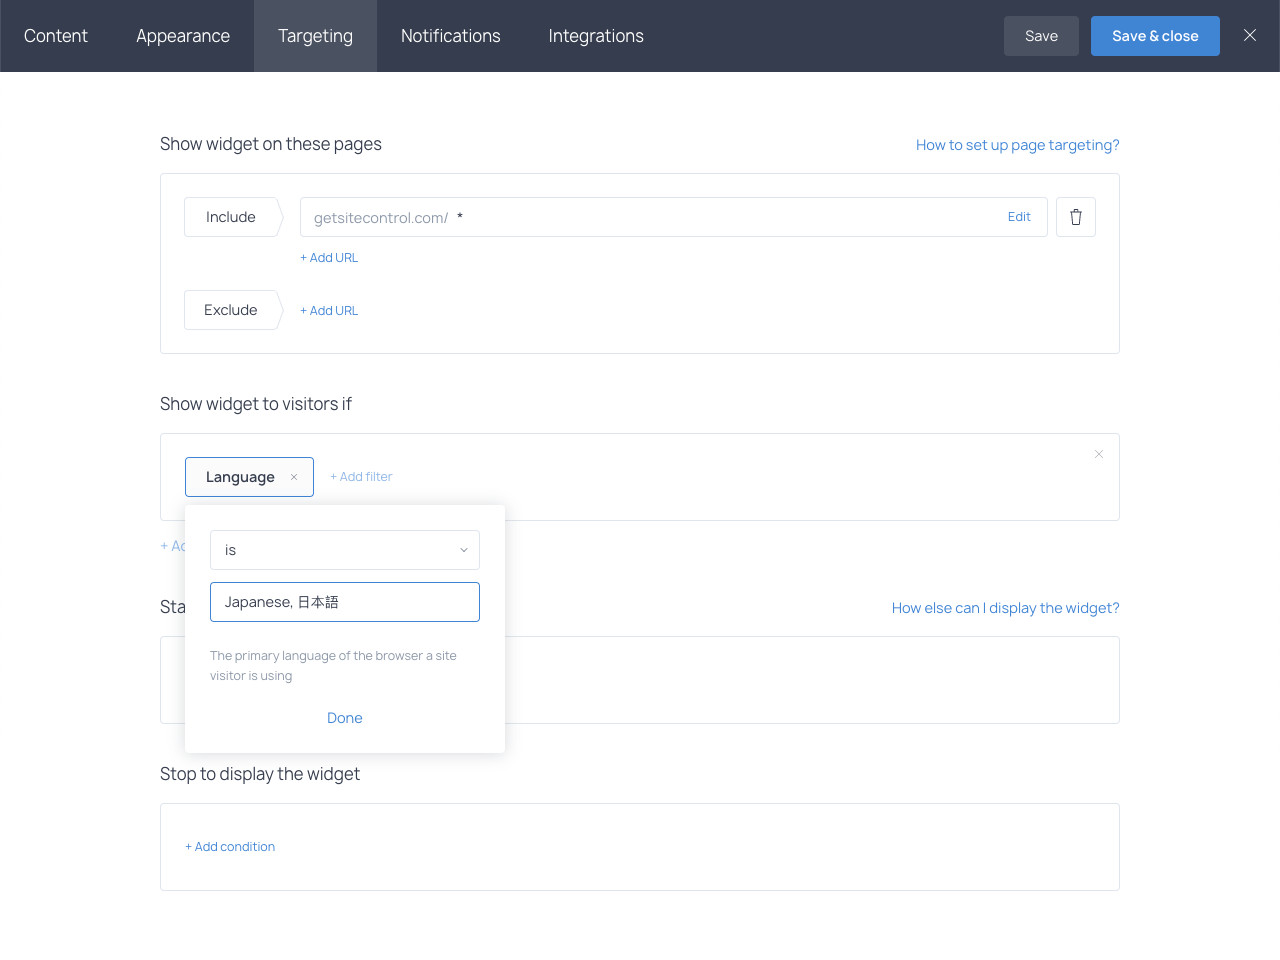 A Contact Us form in Japanese